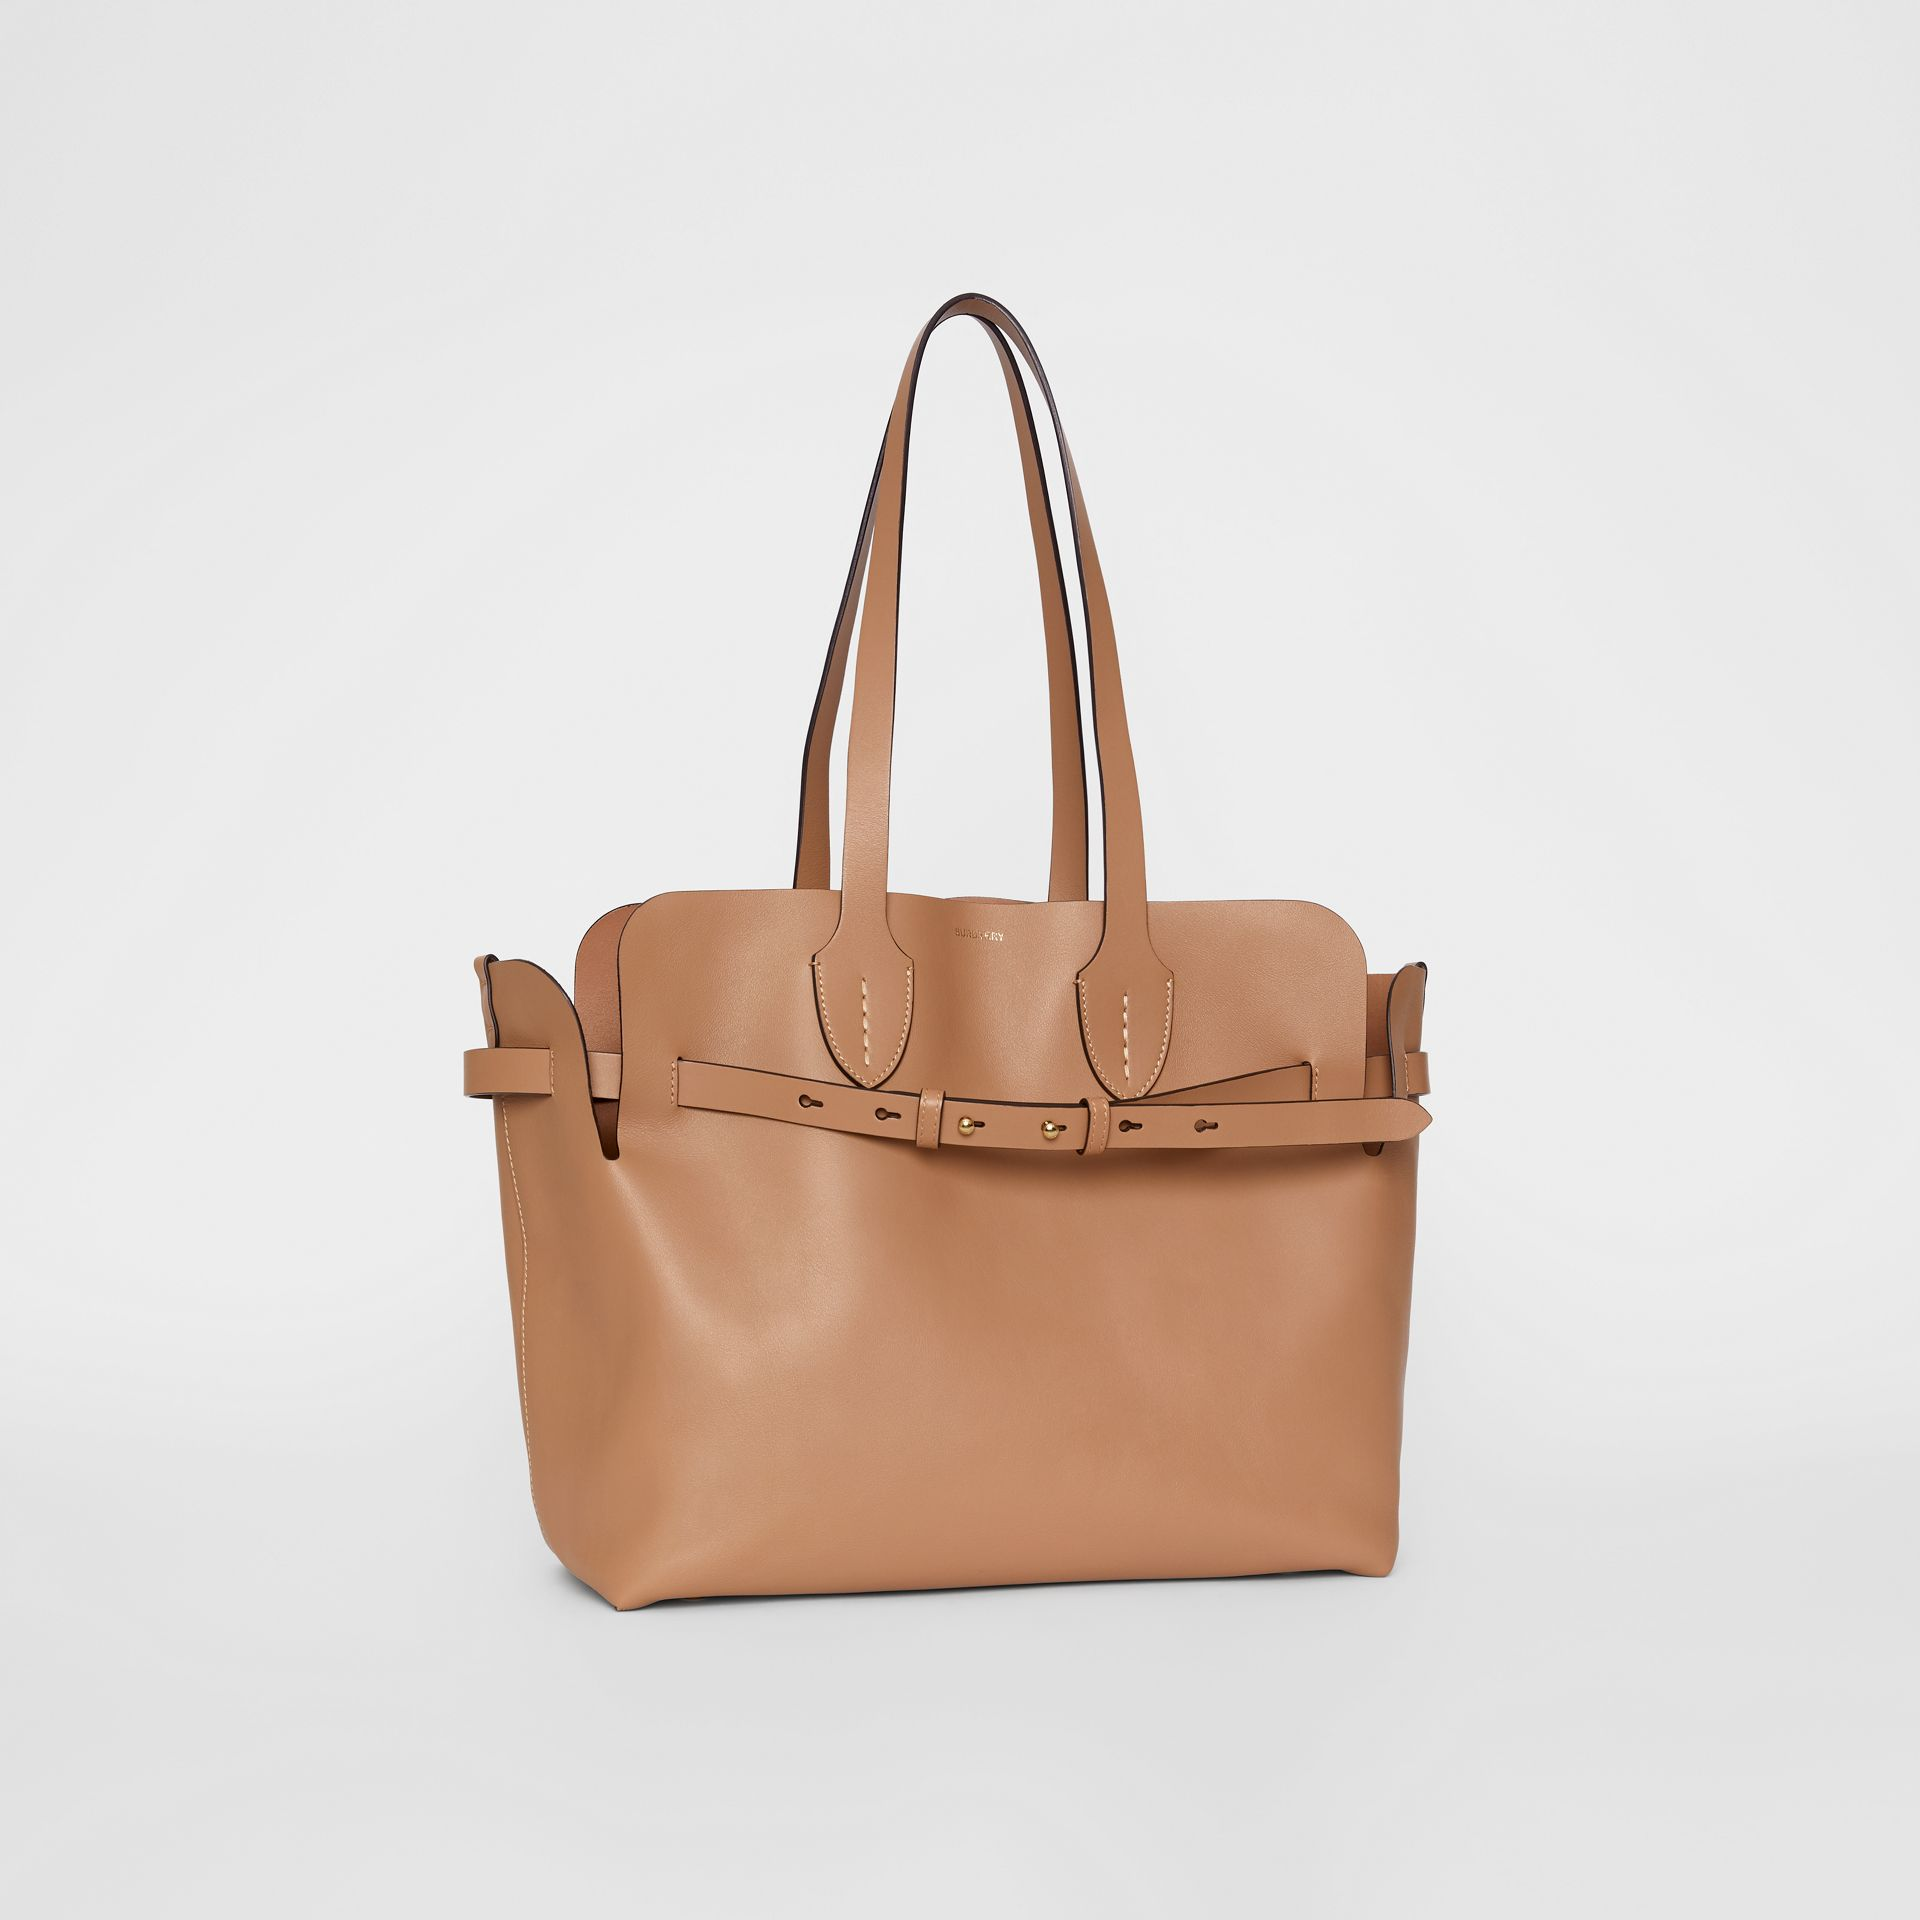 Sac The Belt moyen en cuir doux (Camel Clair) - Femme | Burberry - photo de la galerie 6